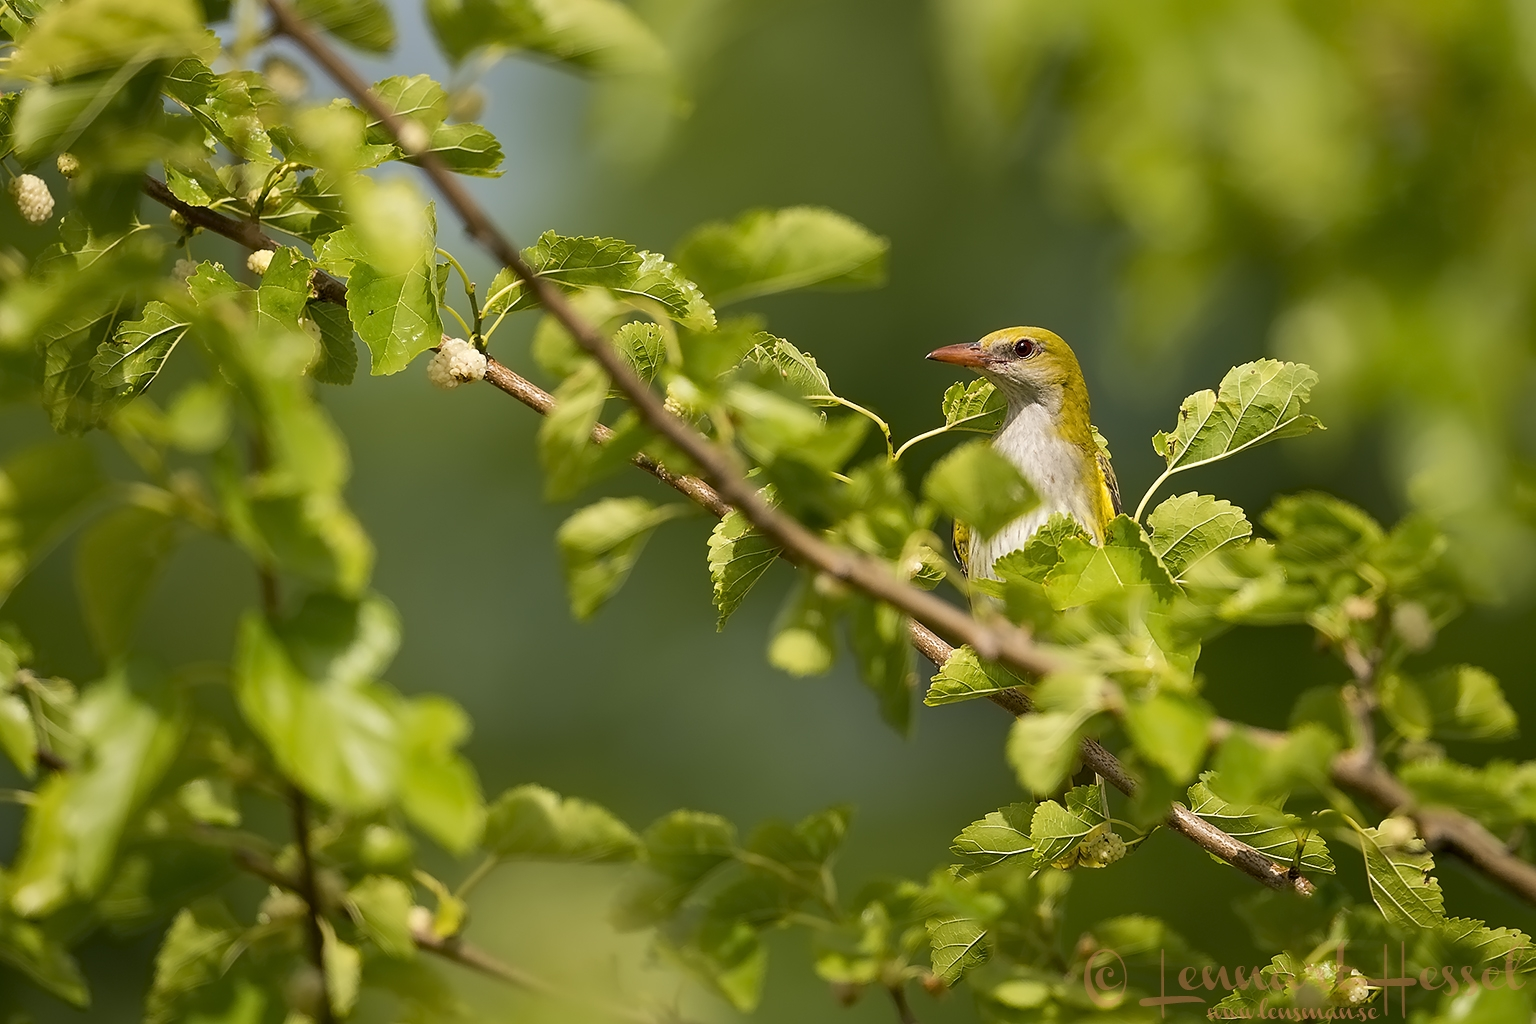 Golden Oriole female Hungary Bee-eater